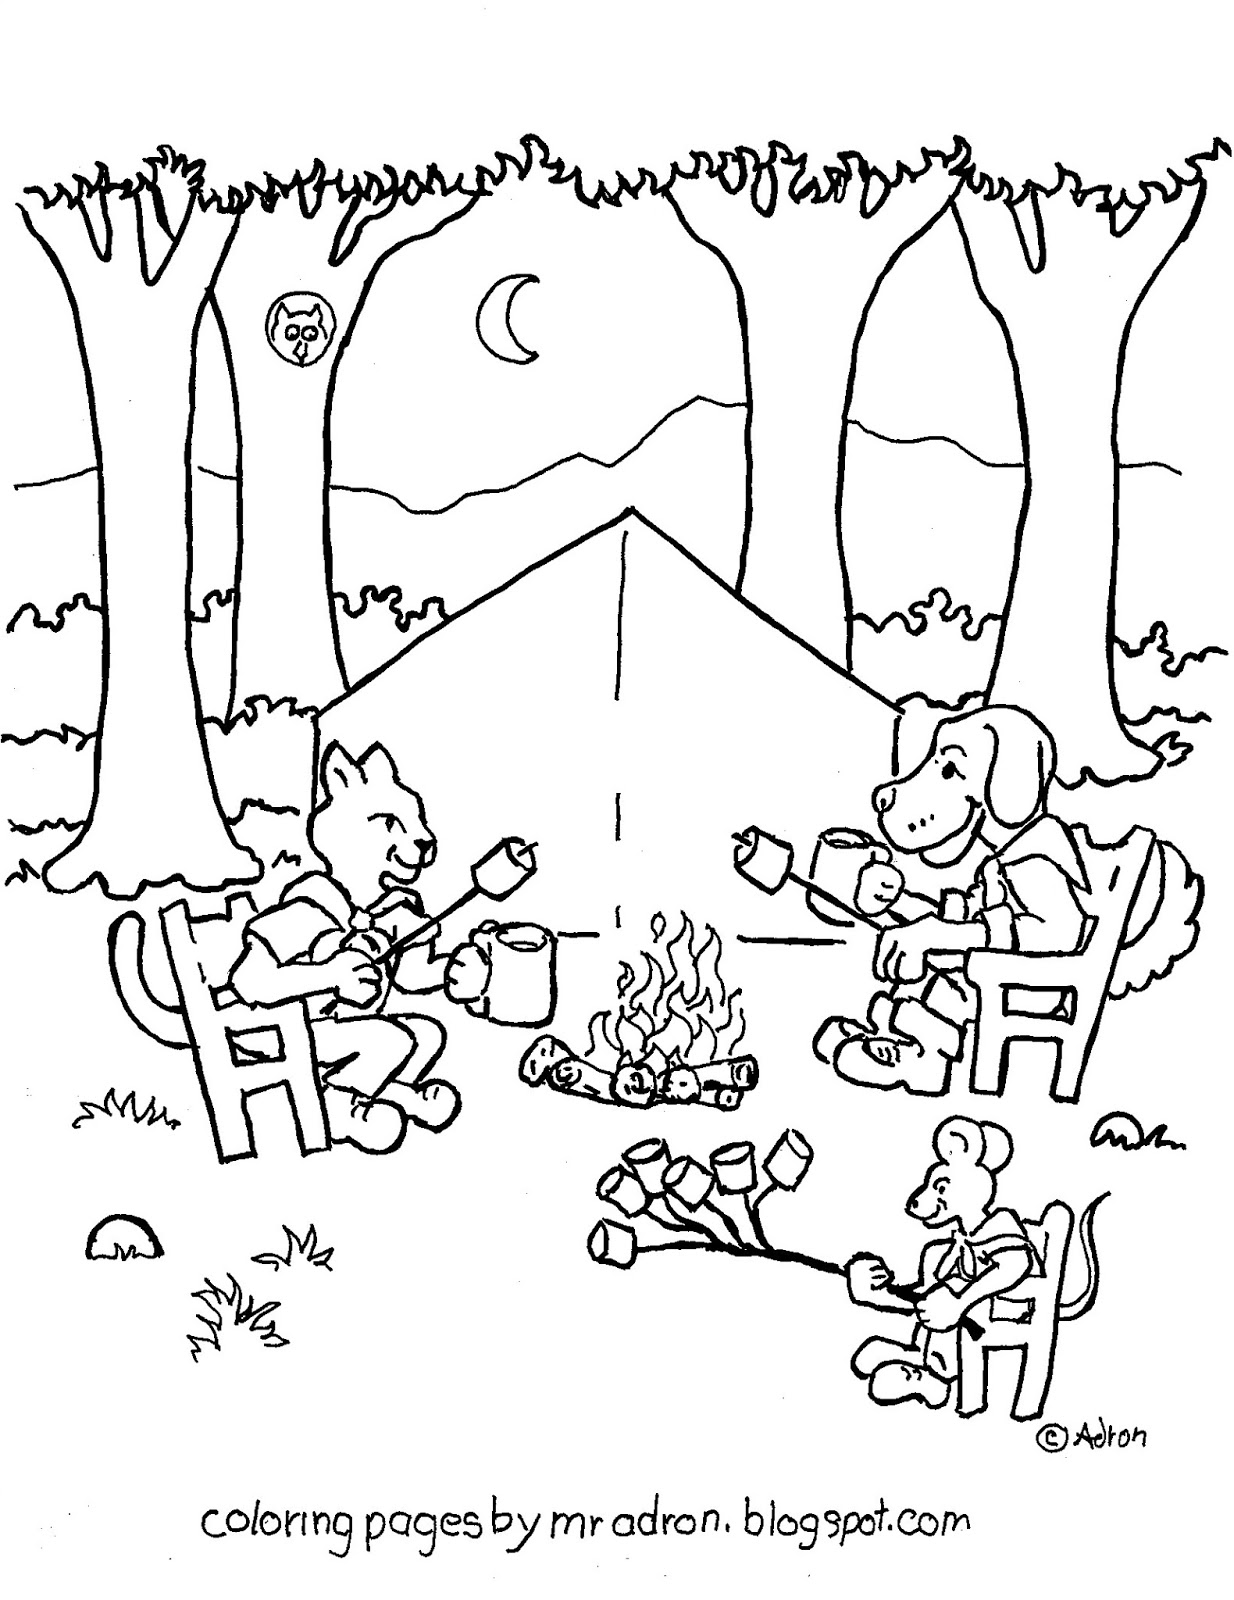 coloring pages for august - photo#19